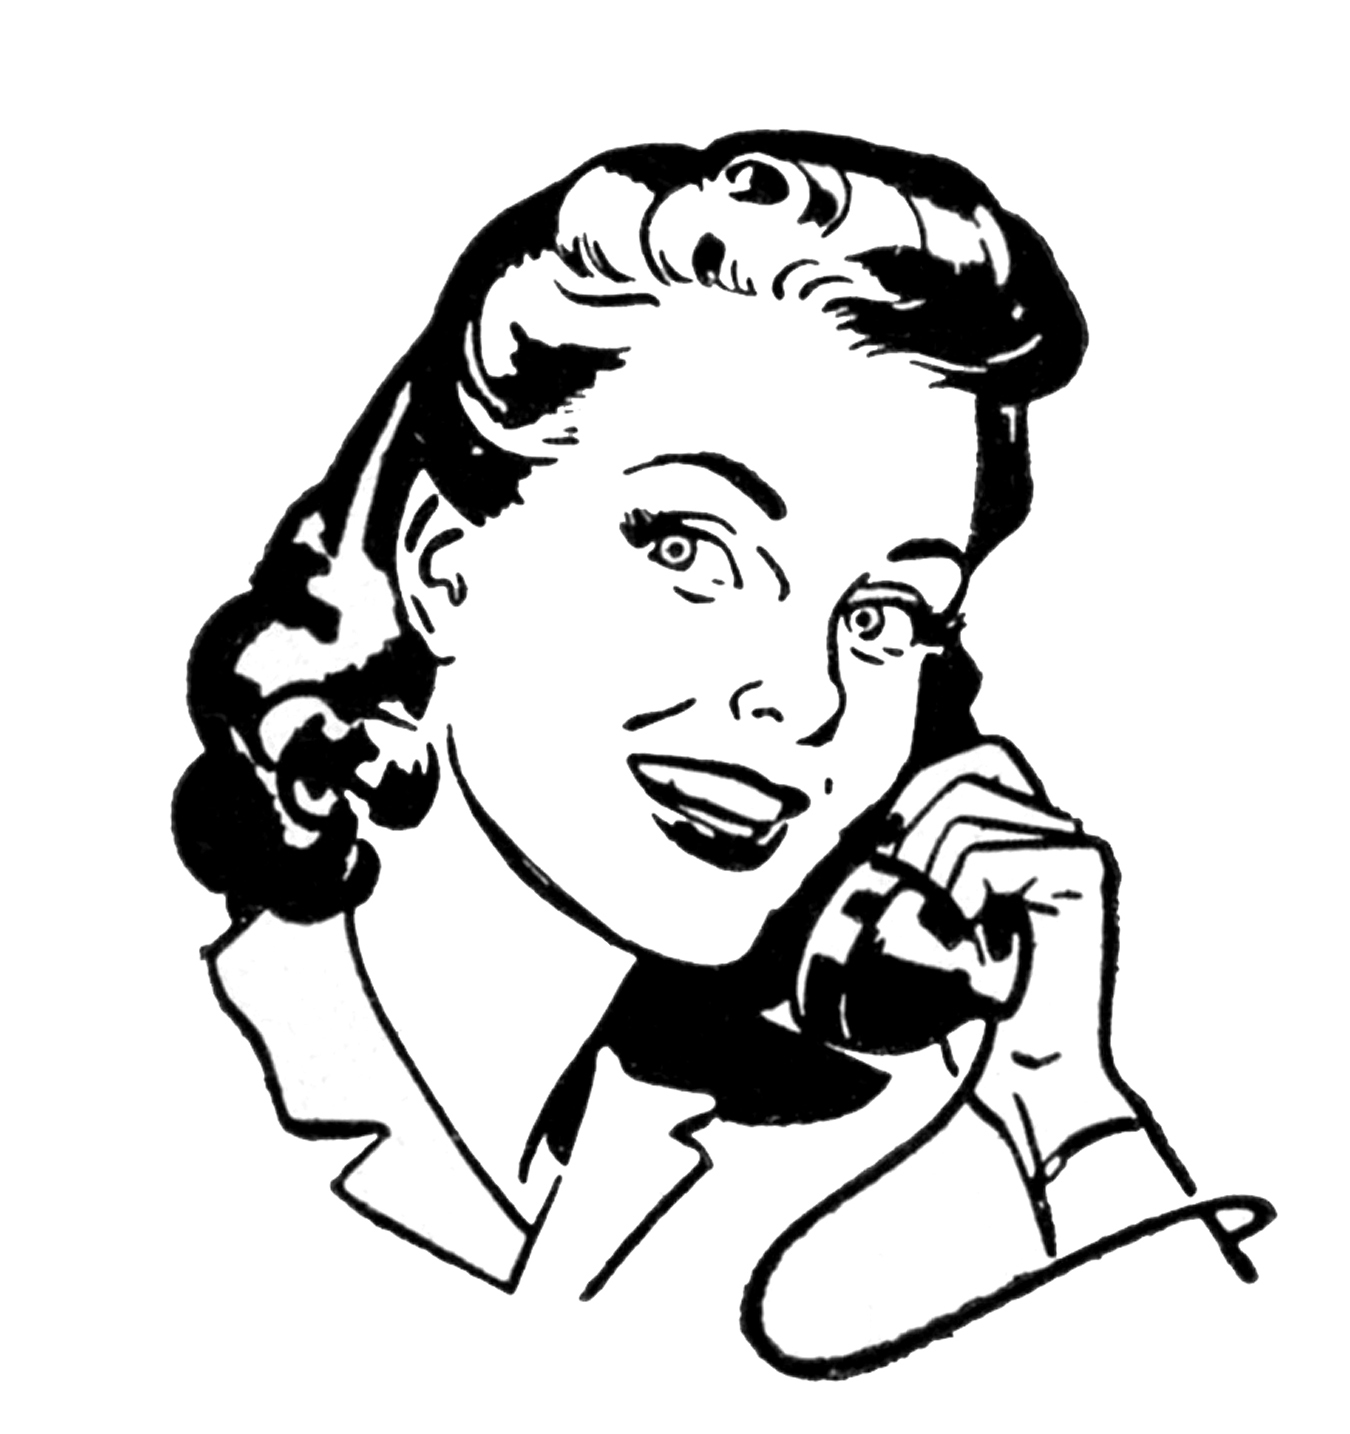 7 Vintage Telephone Images! - The Graphics Fairy